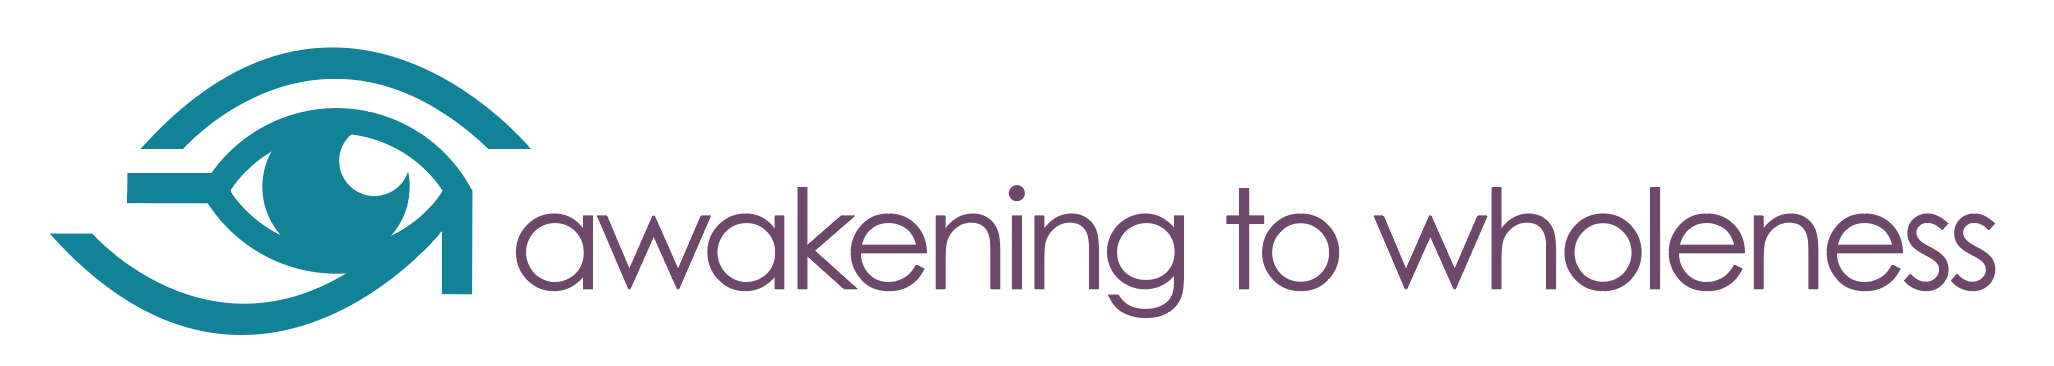 Awakening to Wholeness Mobile Retina Logo